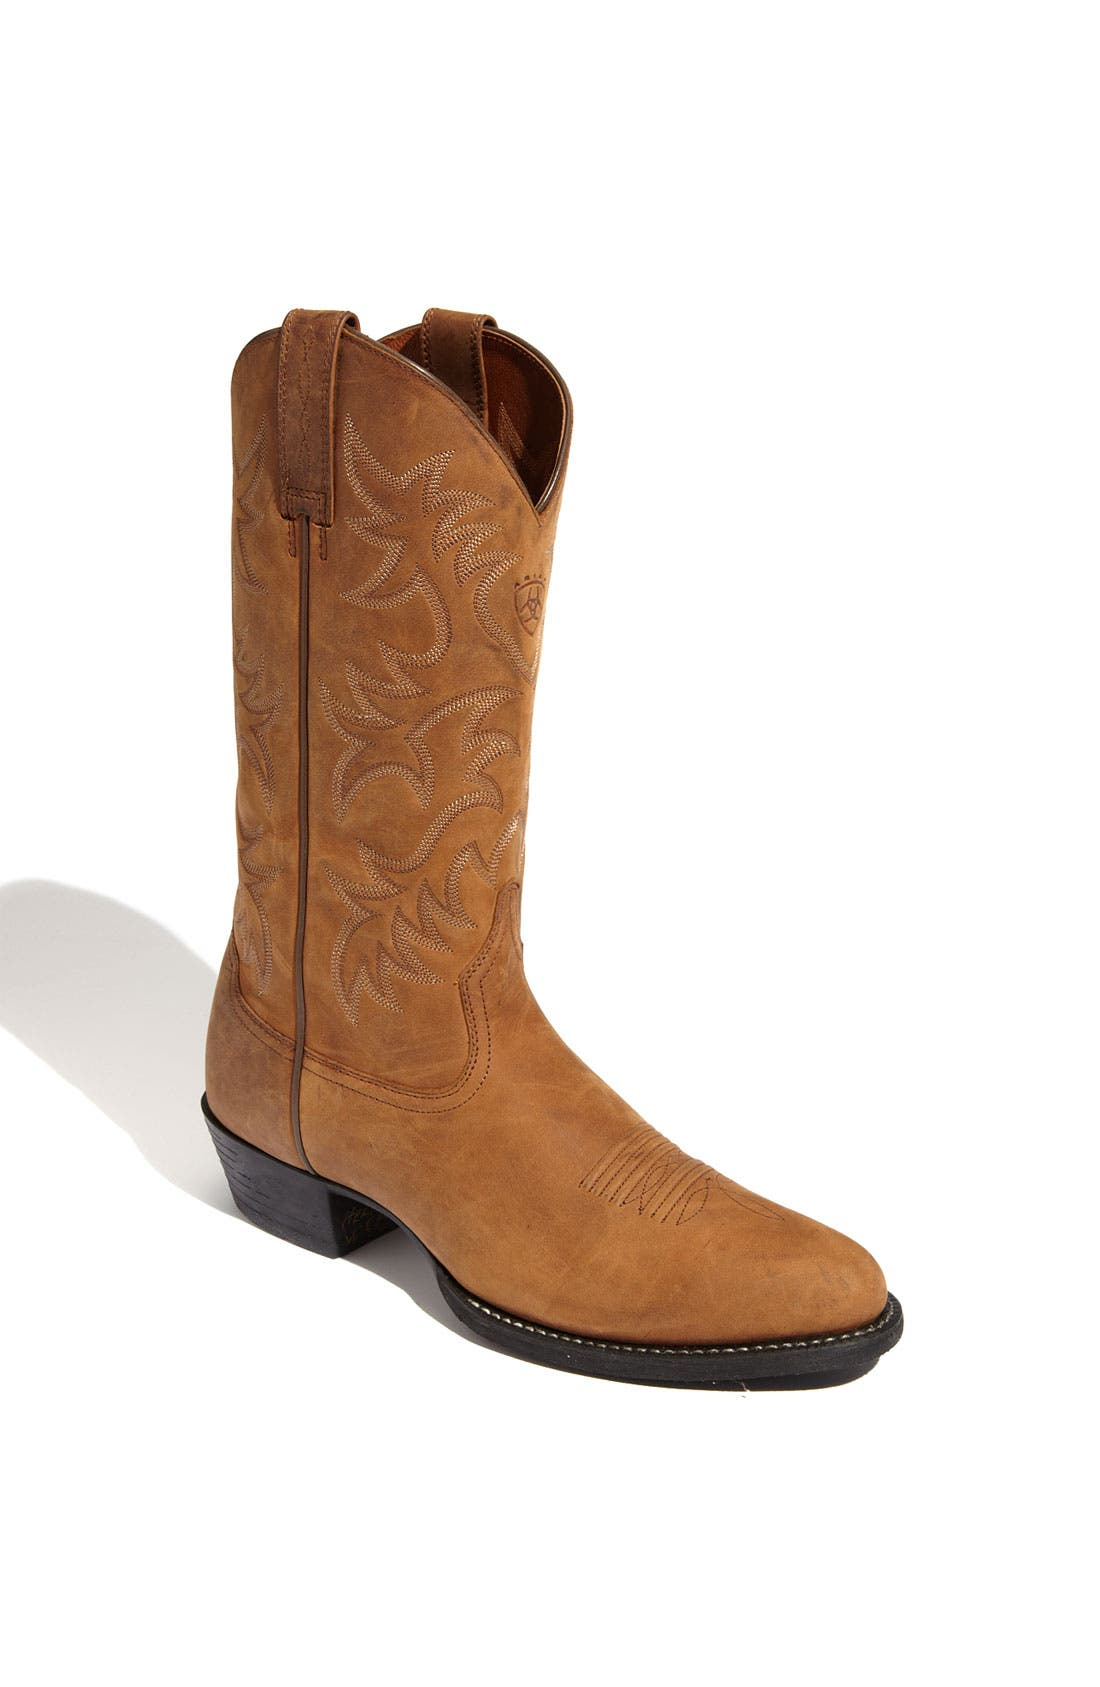 Alternate Image 1 Selected - Ariat 'Heritage' Boot